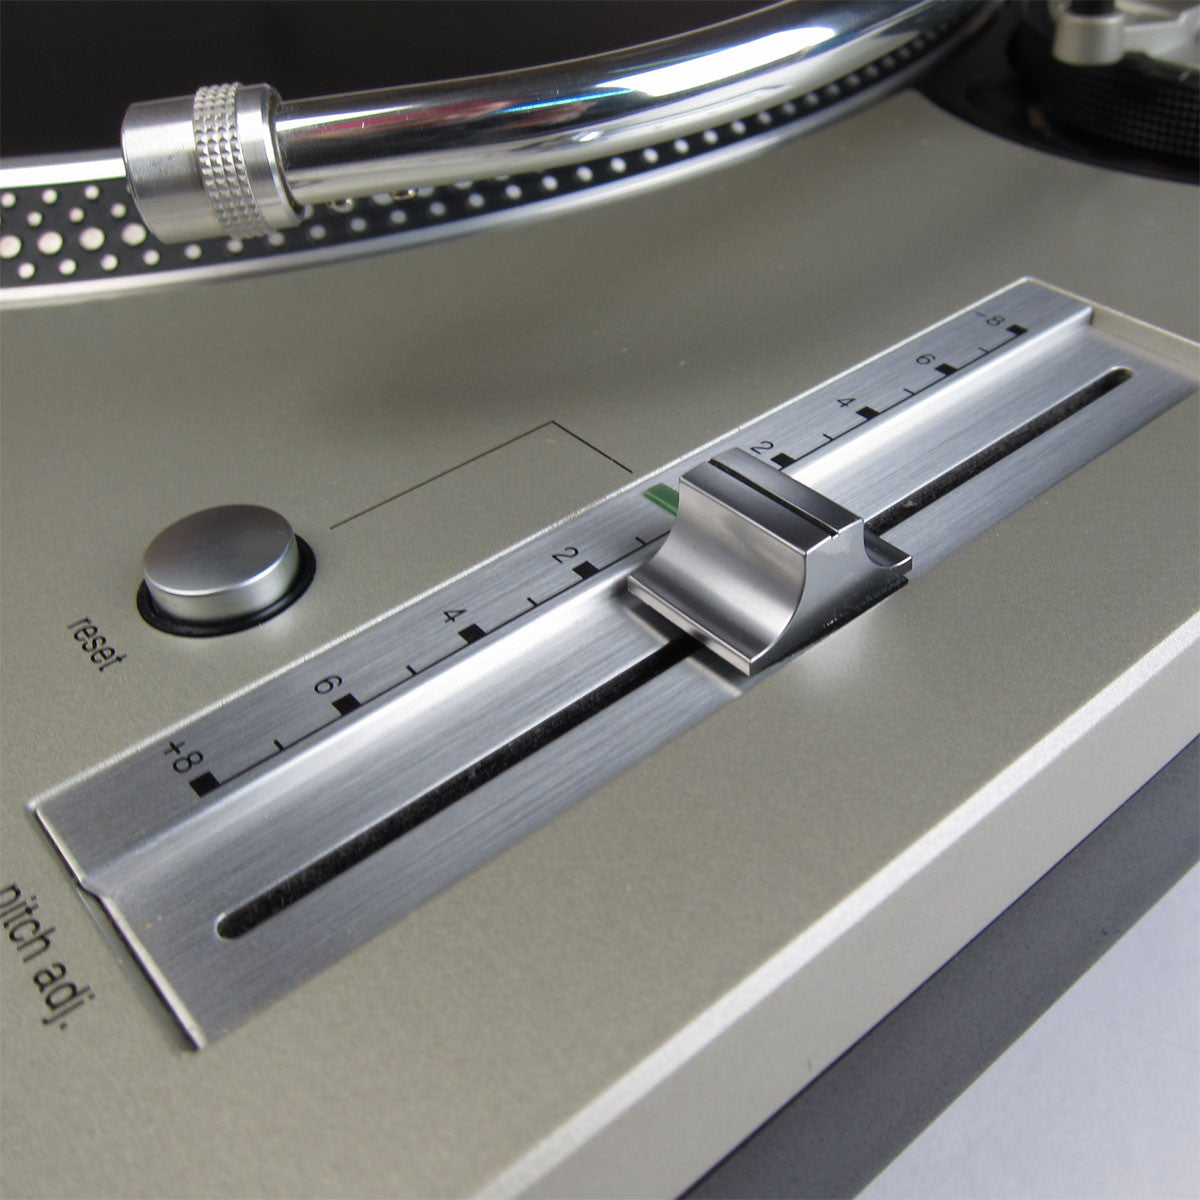 Technics: SL-1200MK5 Turntable - MCC Refurbished pitch